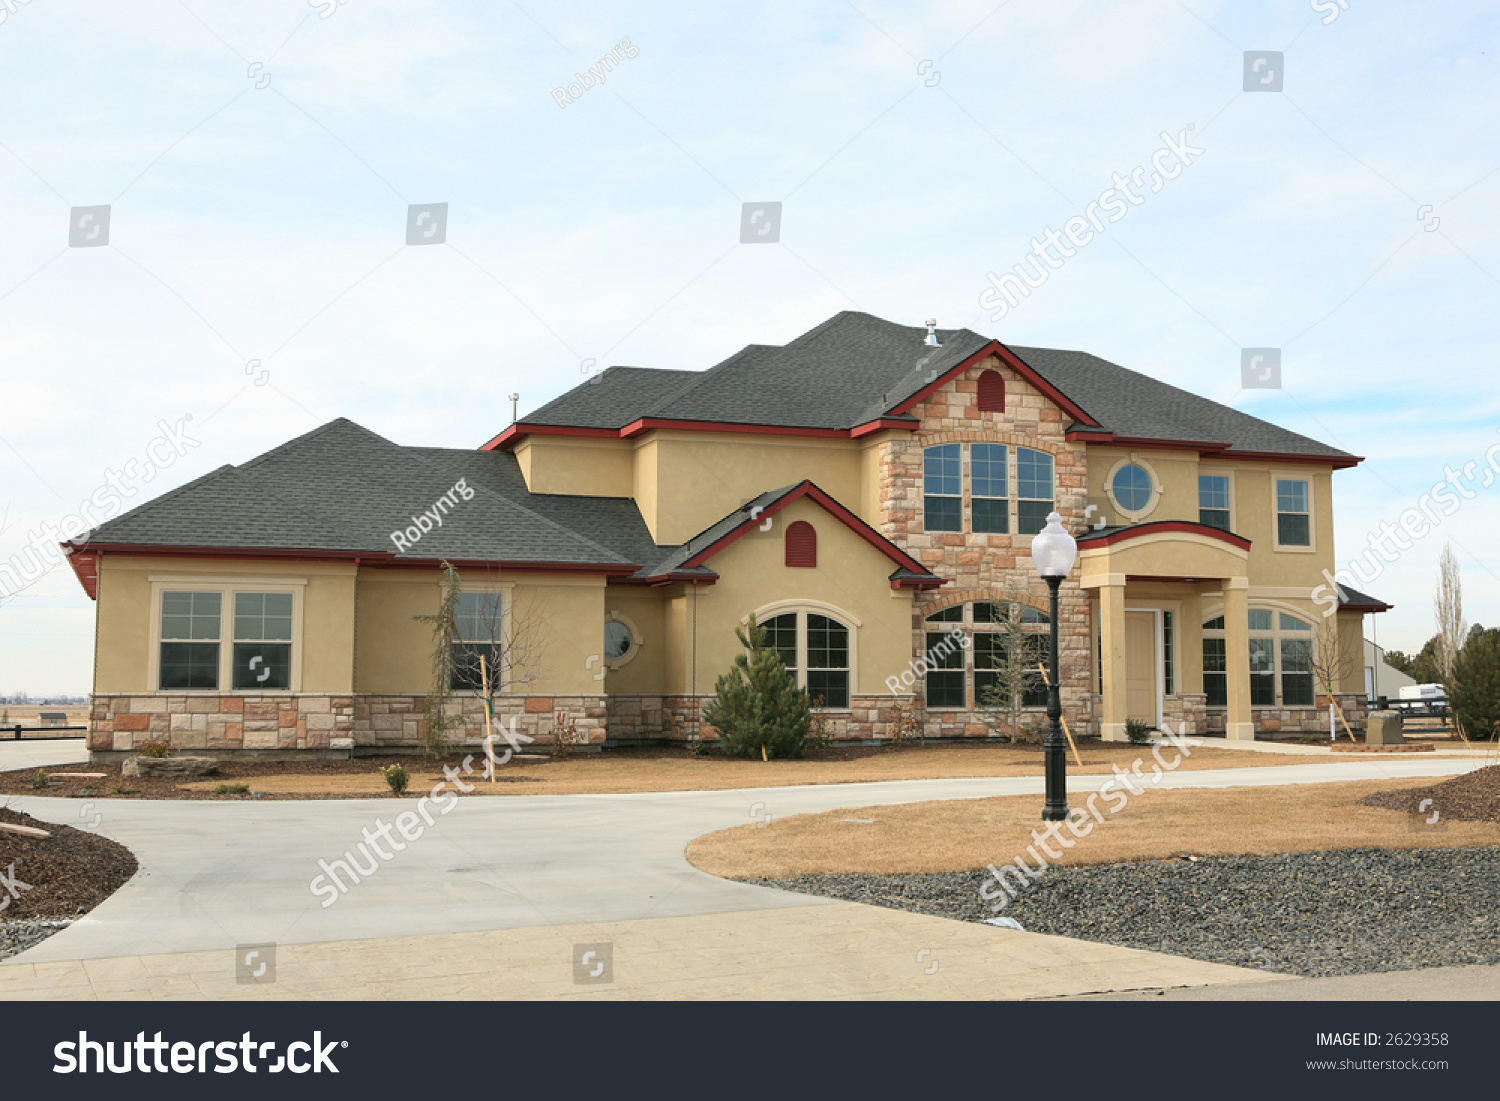 Large expensive modern house yellow stucco and stone stock for Modern house yellow